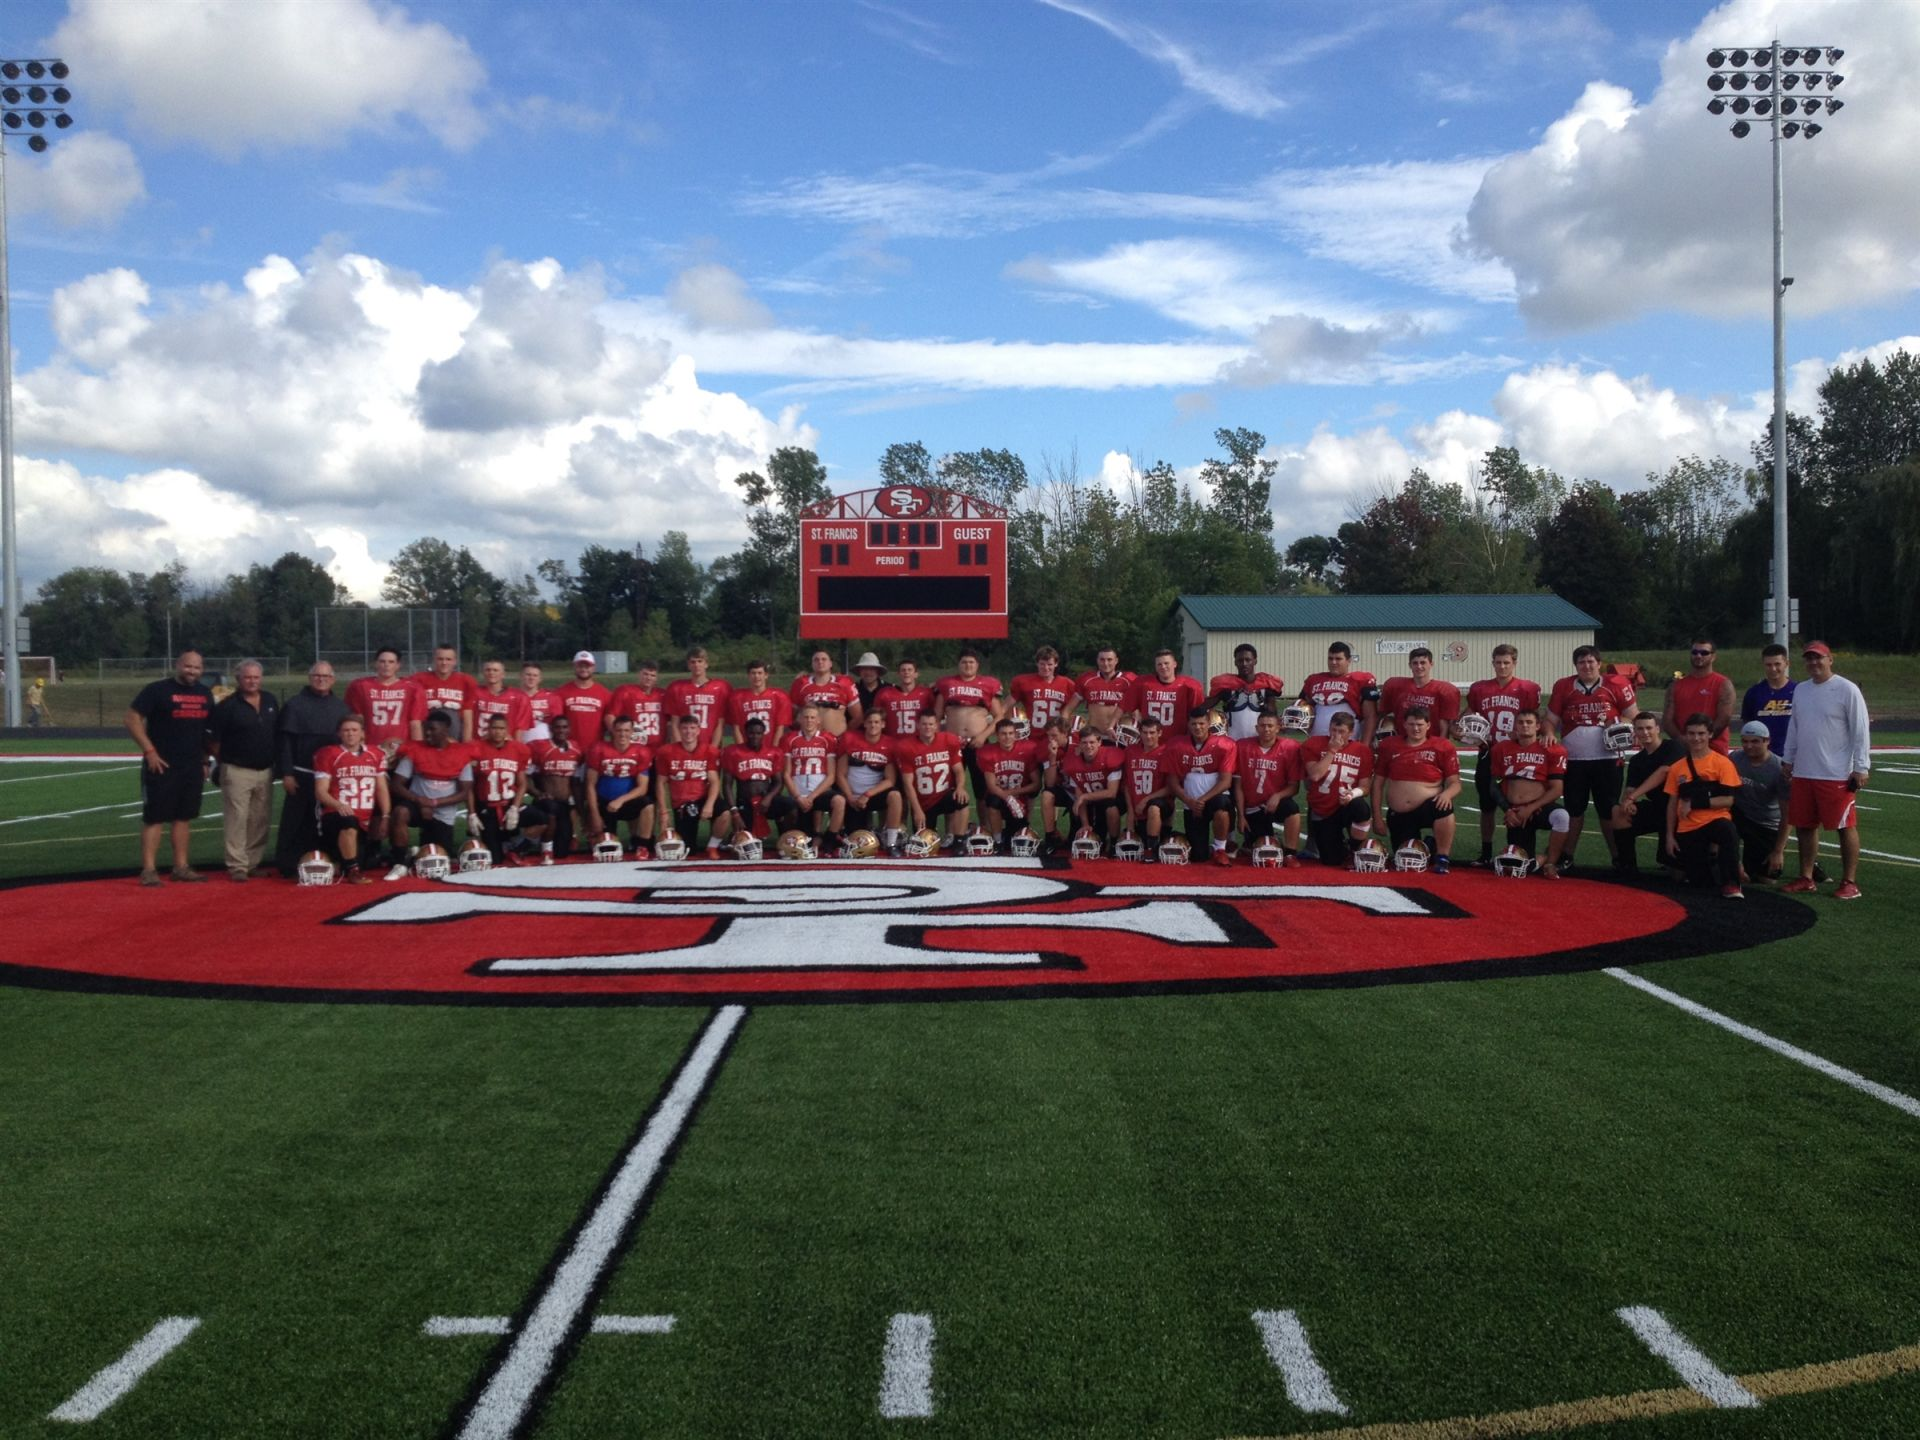 1st Team pic on Polian Family Field